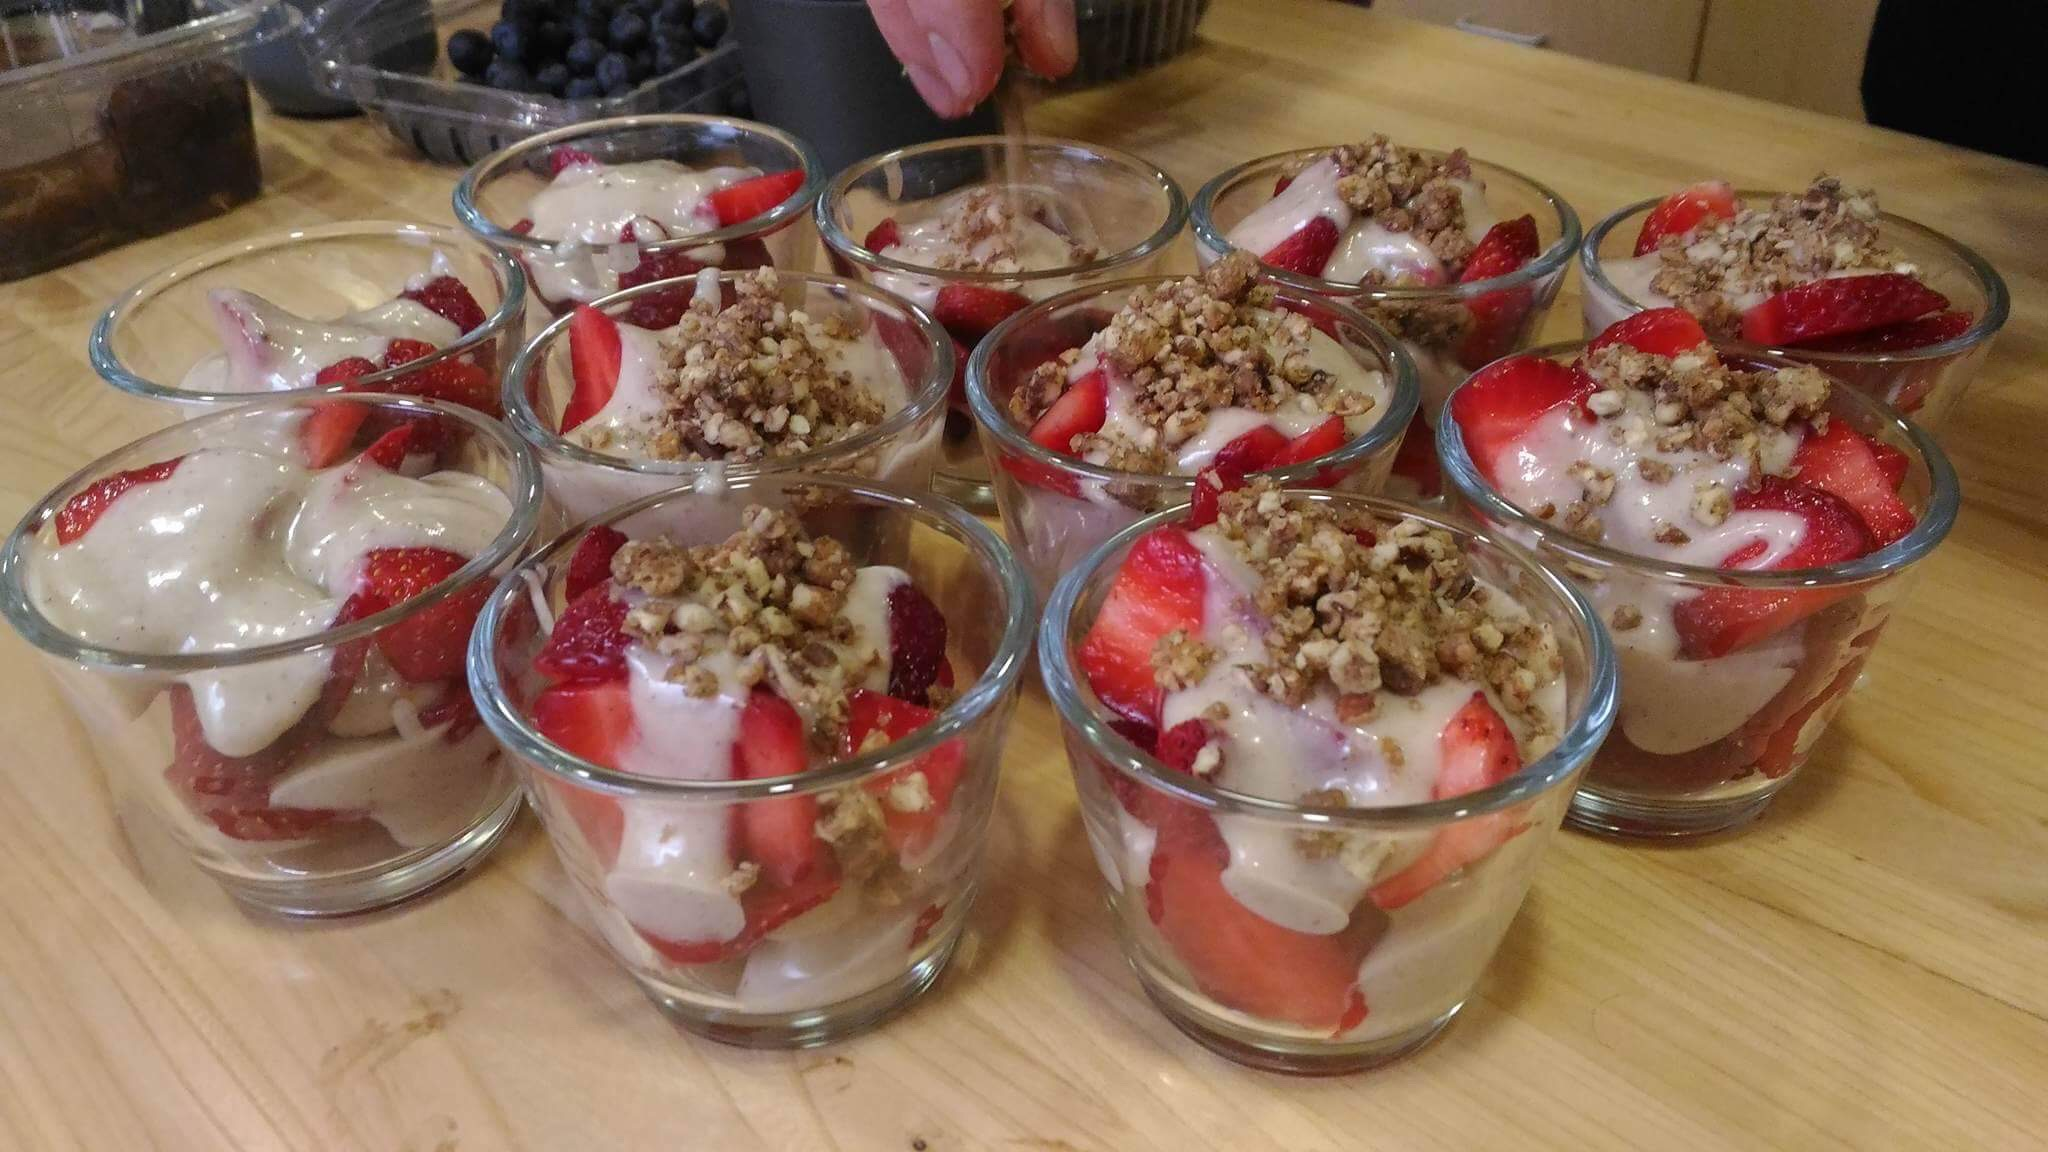 Layered Strawberries, sweet vanilla cream and mulberry-pecan crumble. Adding the finishing touches.